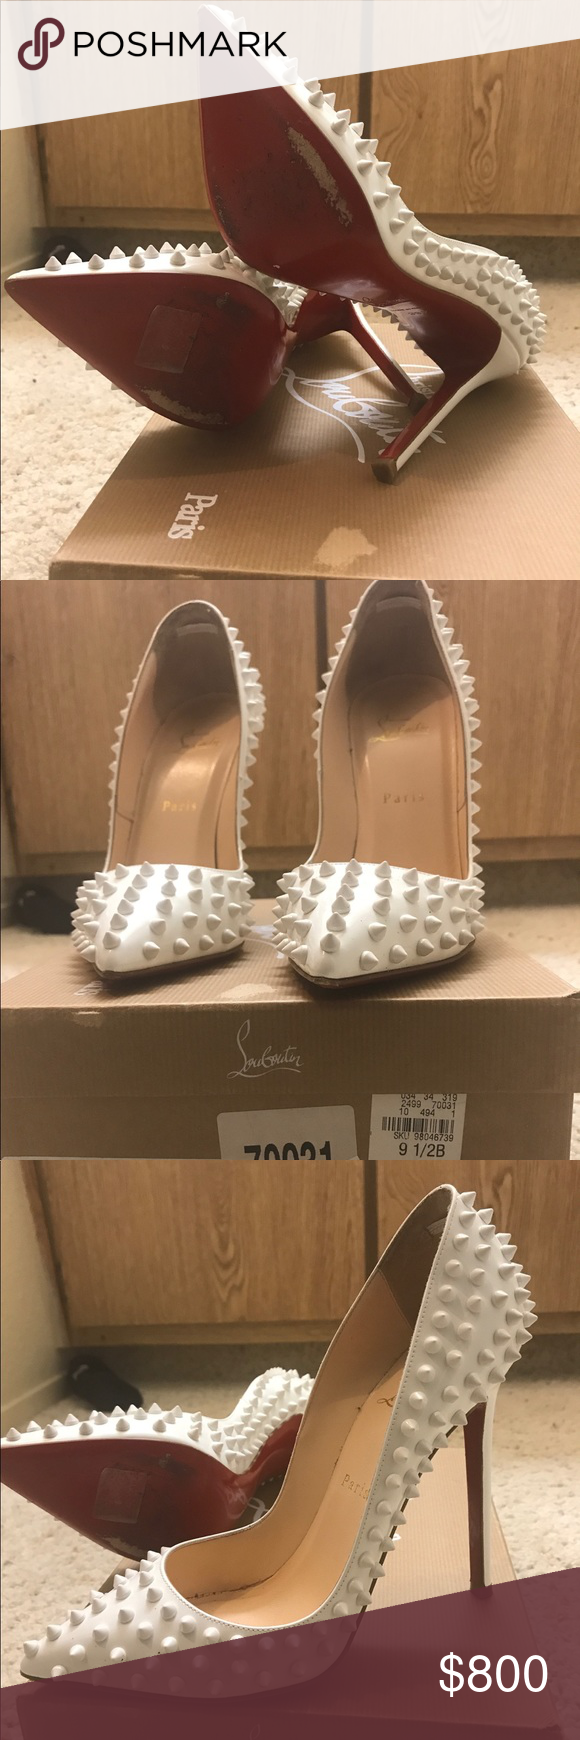 0fbb4ca64a1b Size 39.5 worn twice gently used Gently worn pumps. Rare find Christian  Louboutin Shoes Heels